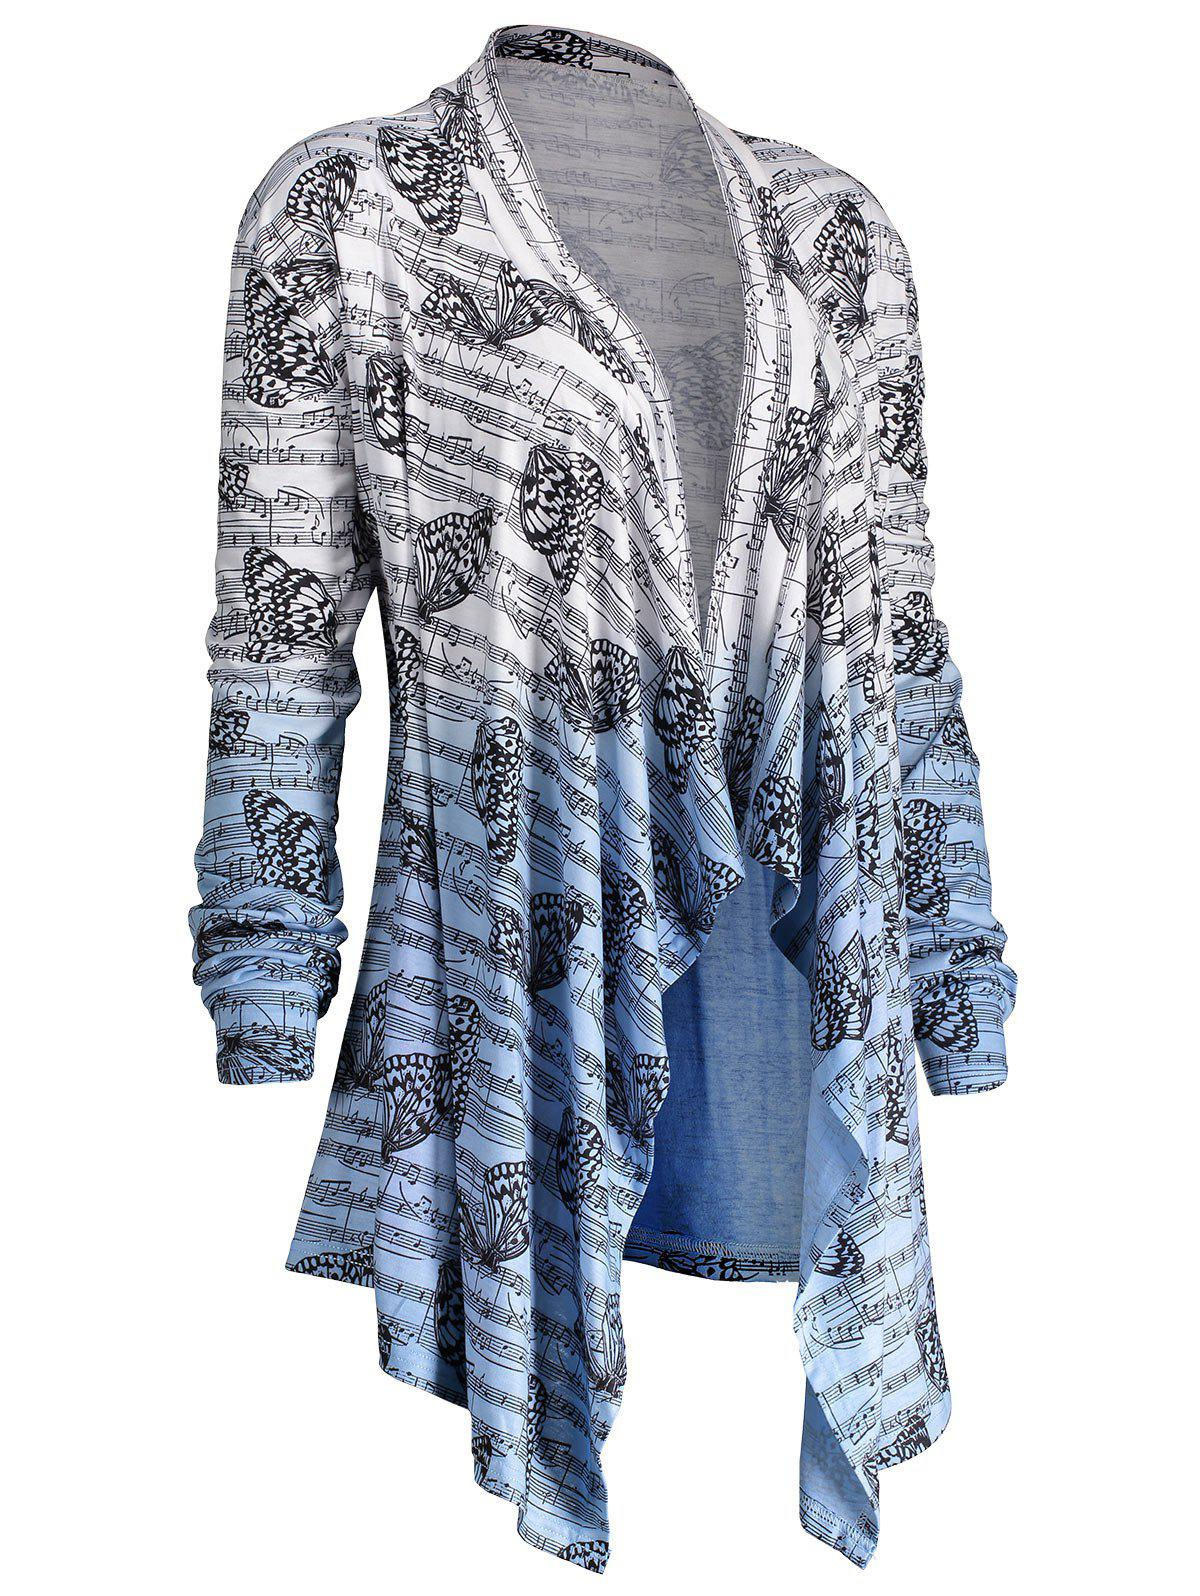 Music Note Butterfly Plus Size Ombre CardiganWOMEN<br><br>Size: 5XL; Color: BLUE AND WHITE; Type: Cardigans; Material: Polyester,Spandex; Sleeve Length: Three Quarter; Collar: Collarless; Style: Fashion; Season: Fall,Spring; Pattern Type: Others; Weight: 0.3700kg; Package Contents: 1 x Cardigan;